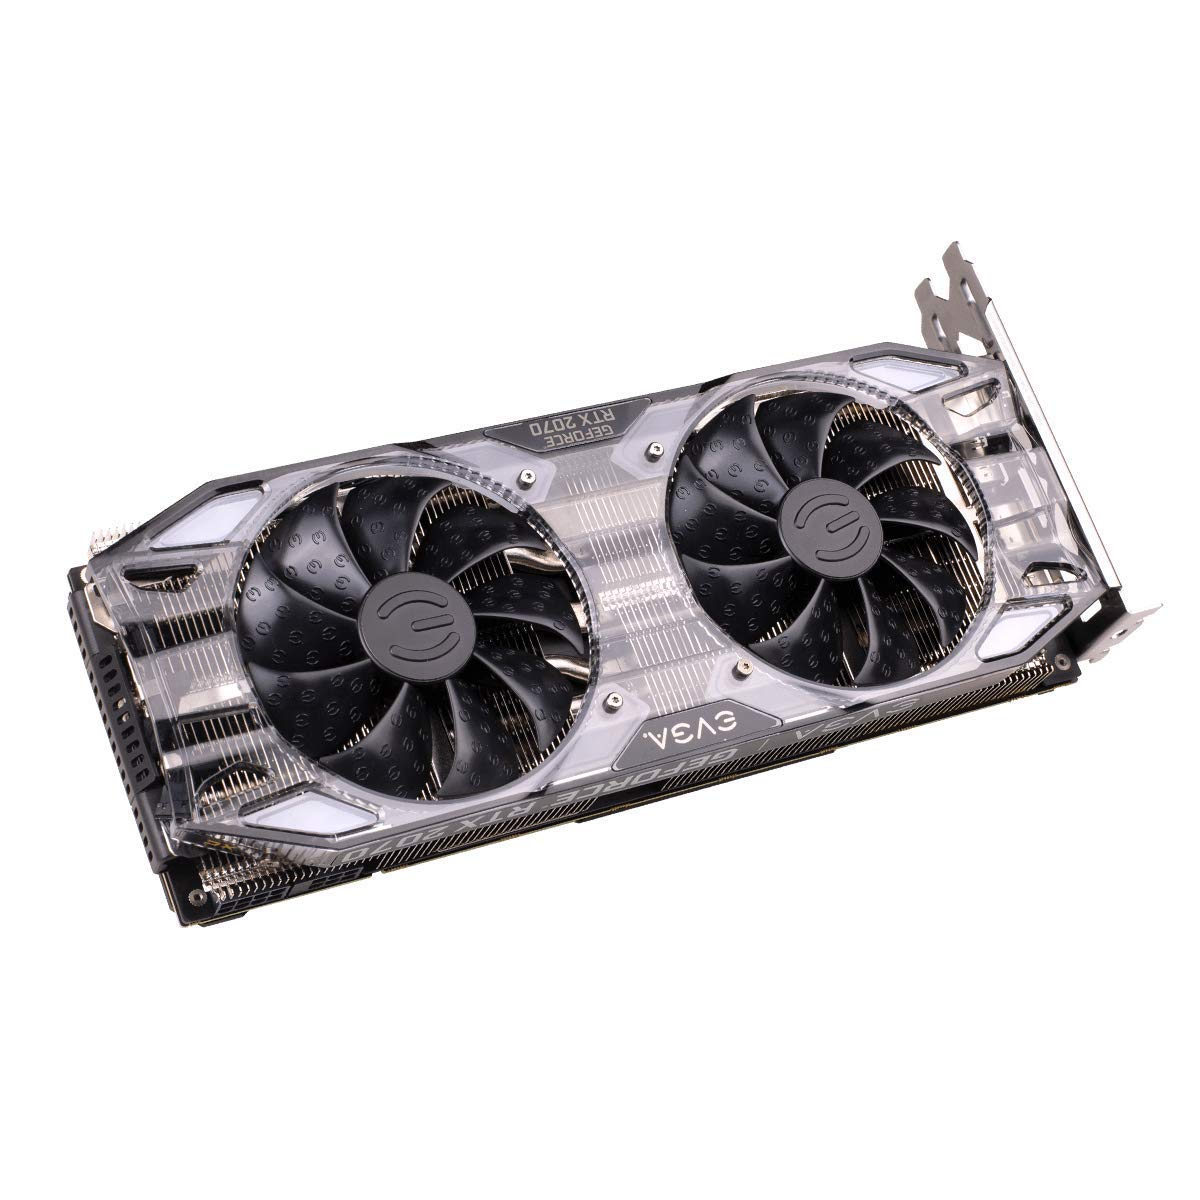 EVGA GeForce RTX 2070 XC GAMING 08G-P4-2172-KR, 8GB GDDR6, Dual HDB Fans &  RGB LED Video Card